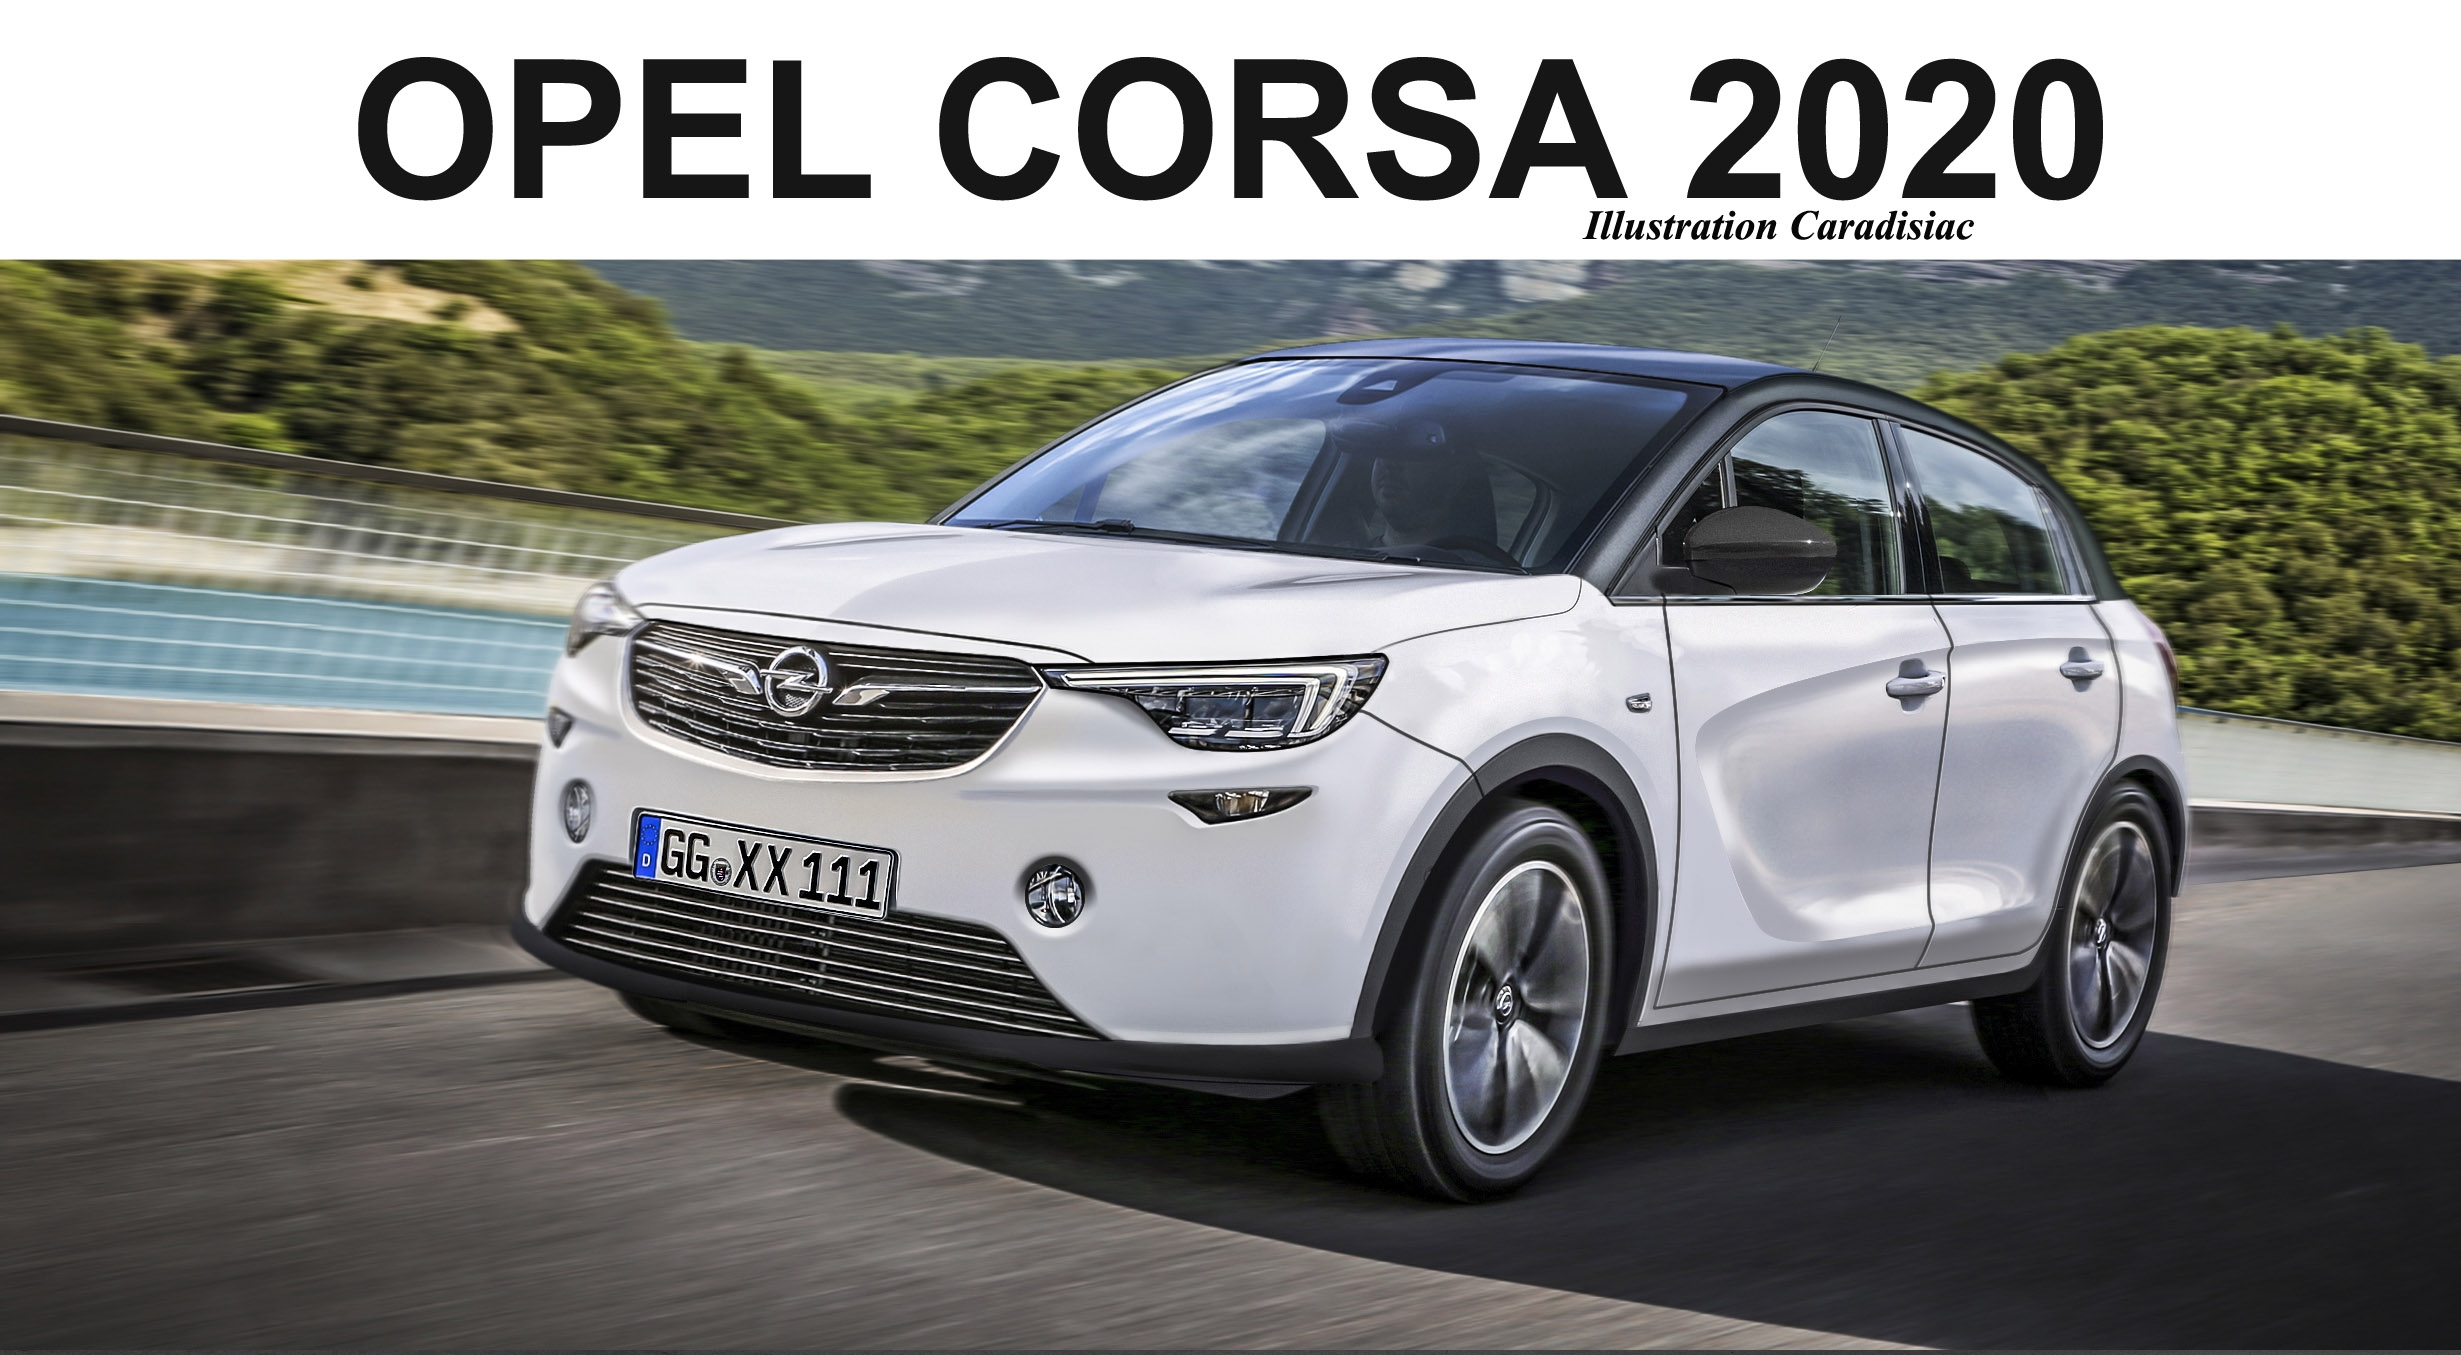 54 All New 2020 Opel Corsa Price and Review